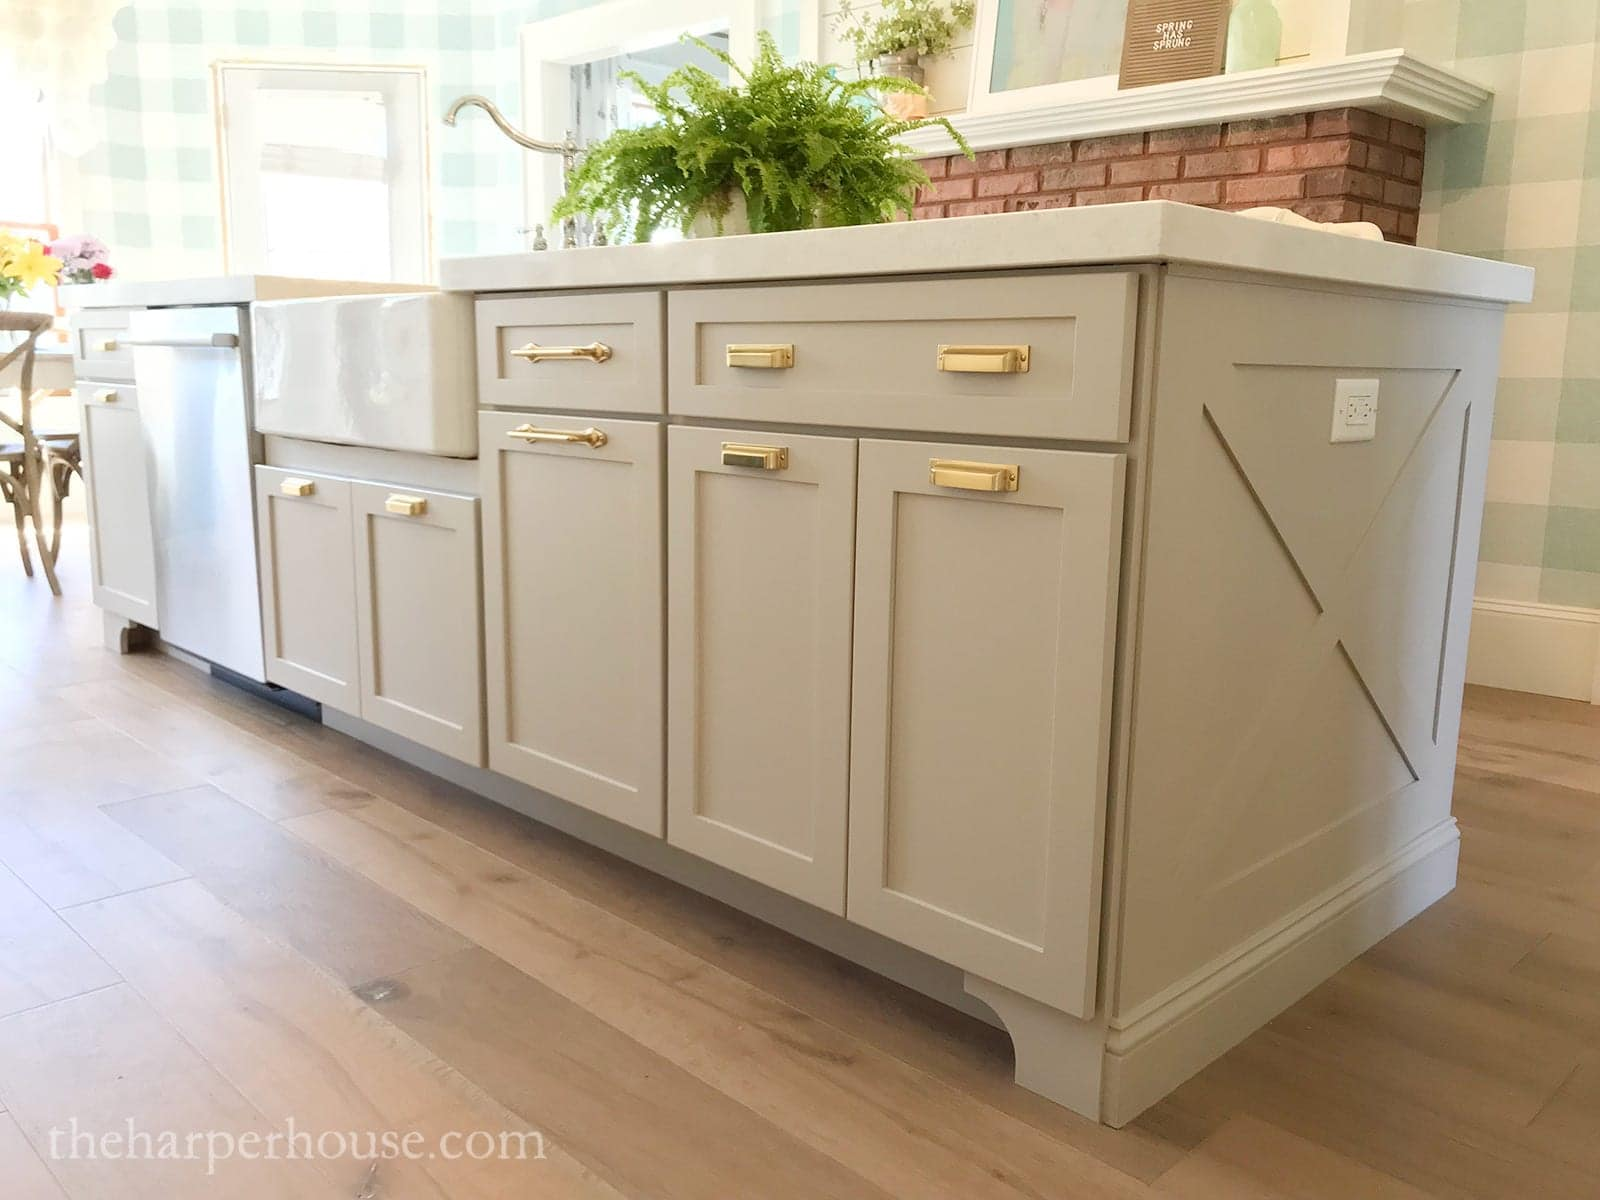 diy kitchen island trim - full tutorial on how to build kitchen island trim yourself!